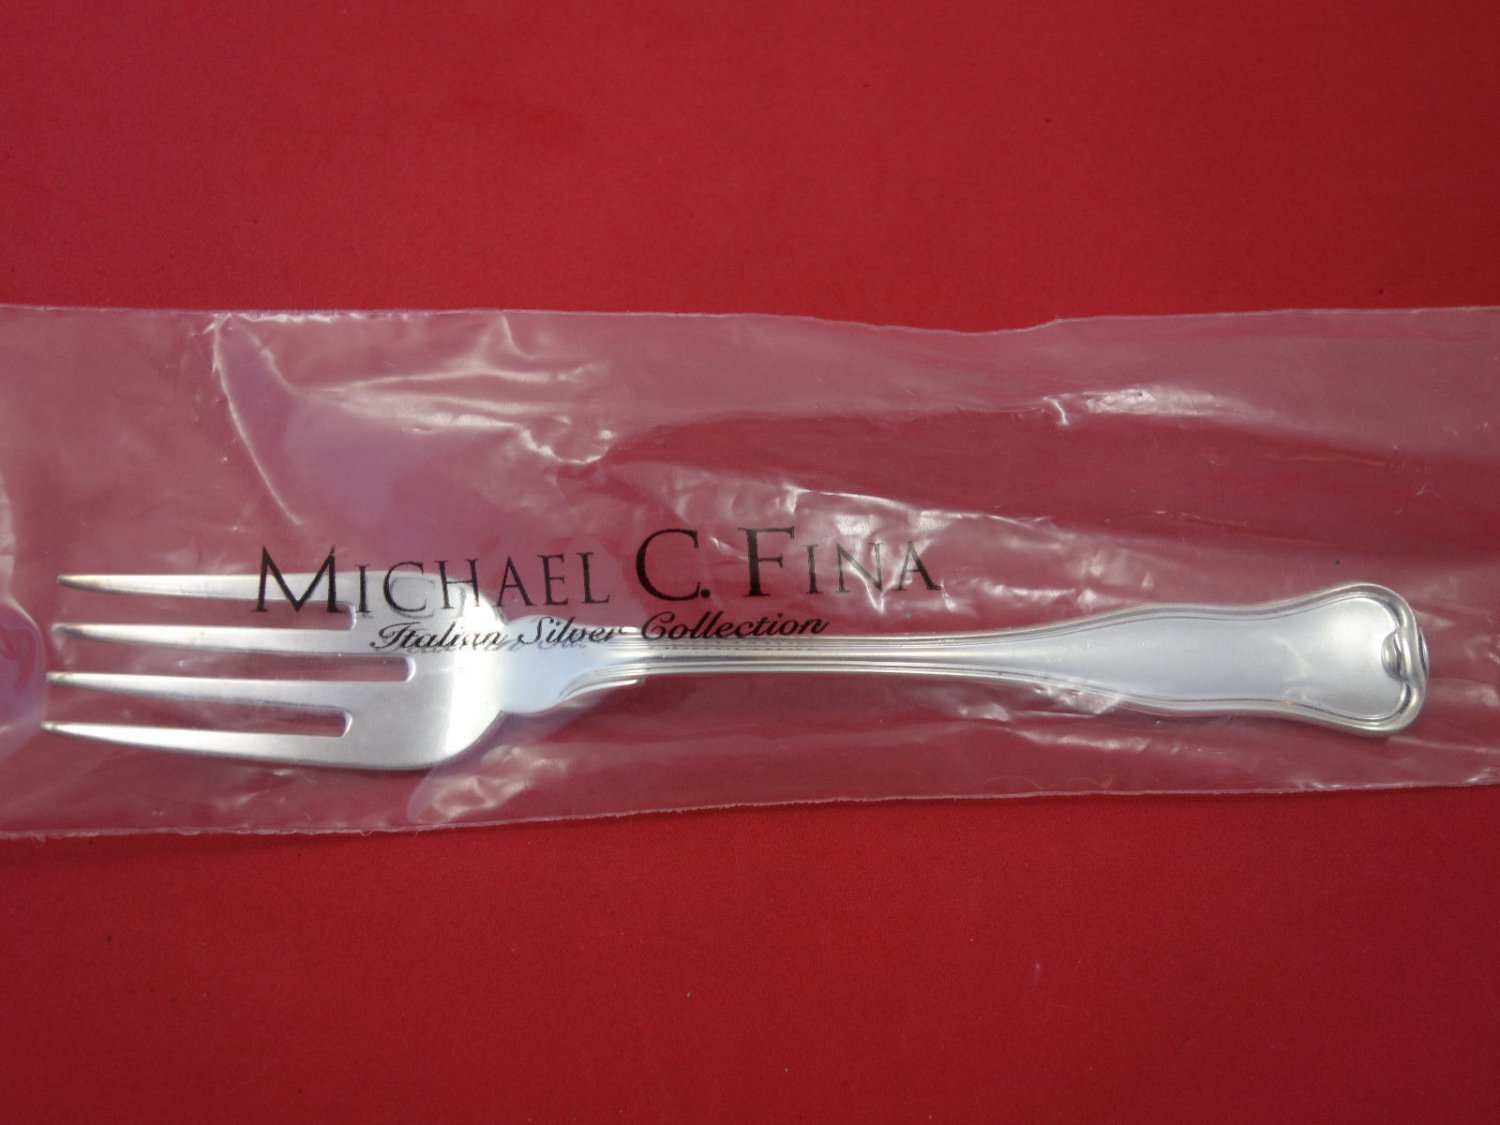 "Danese By Zaramella Argenti Sterling Silver Salad Fork 6 3/4"" New"